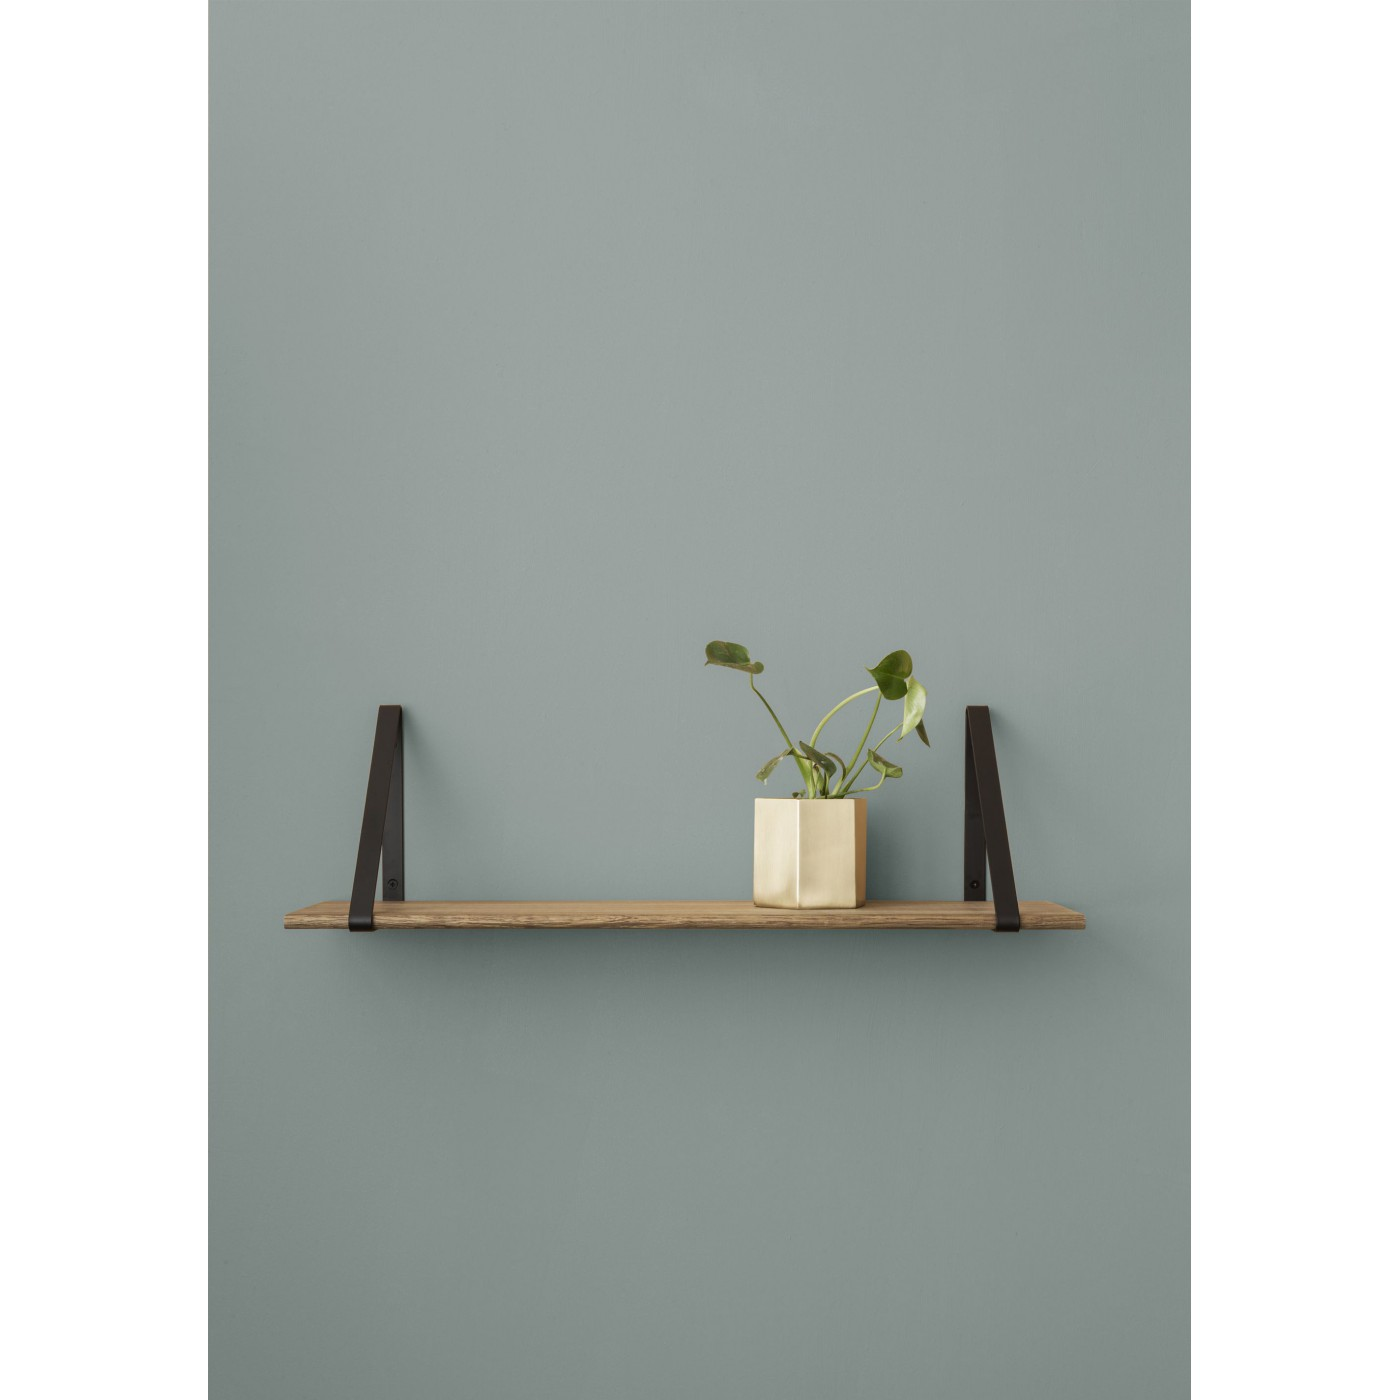 2 Equerres Pour étagère The Shelf Ferm Living